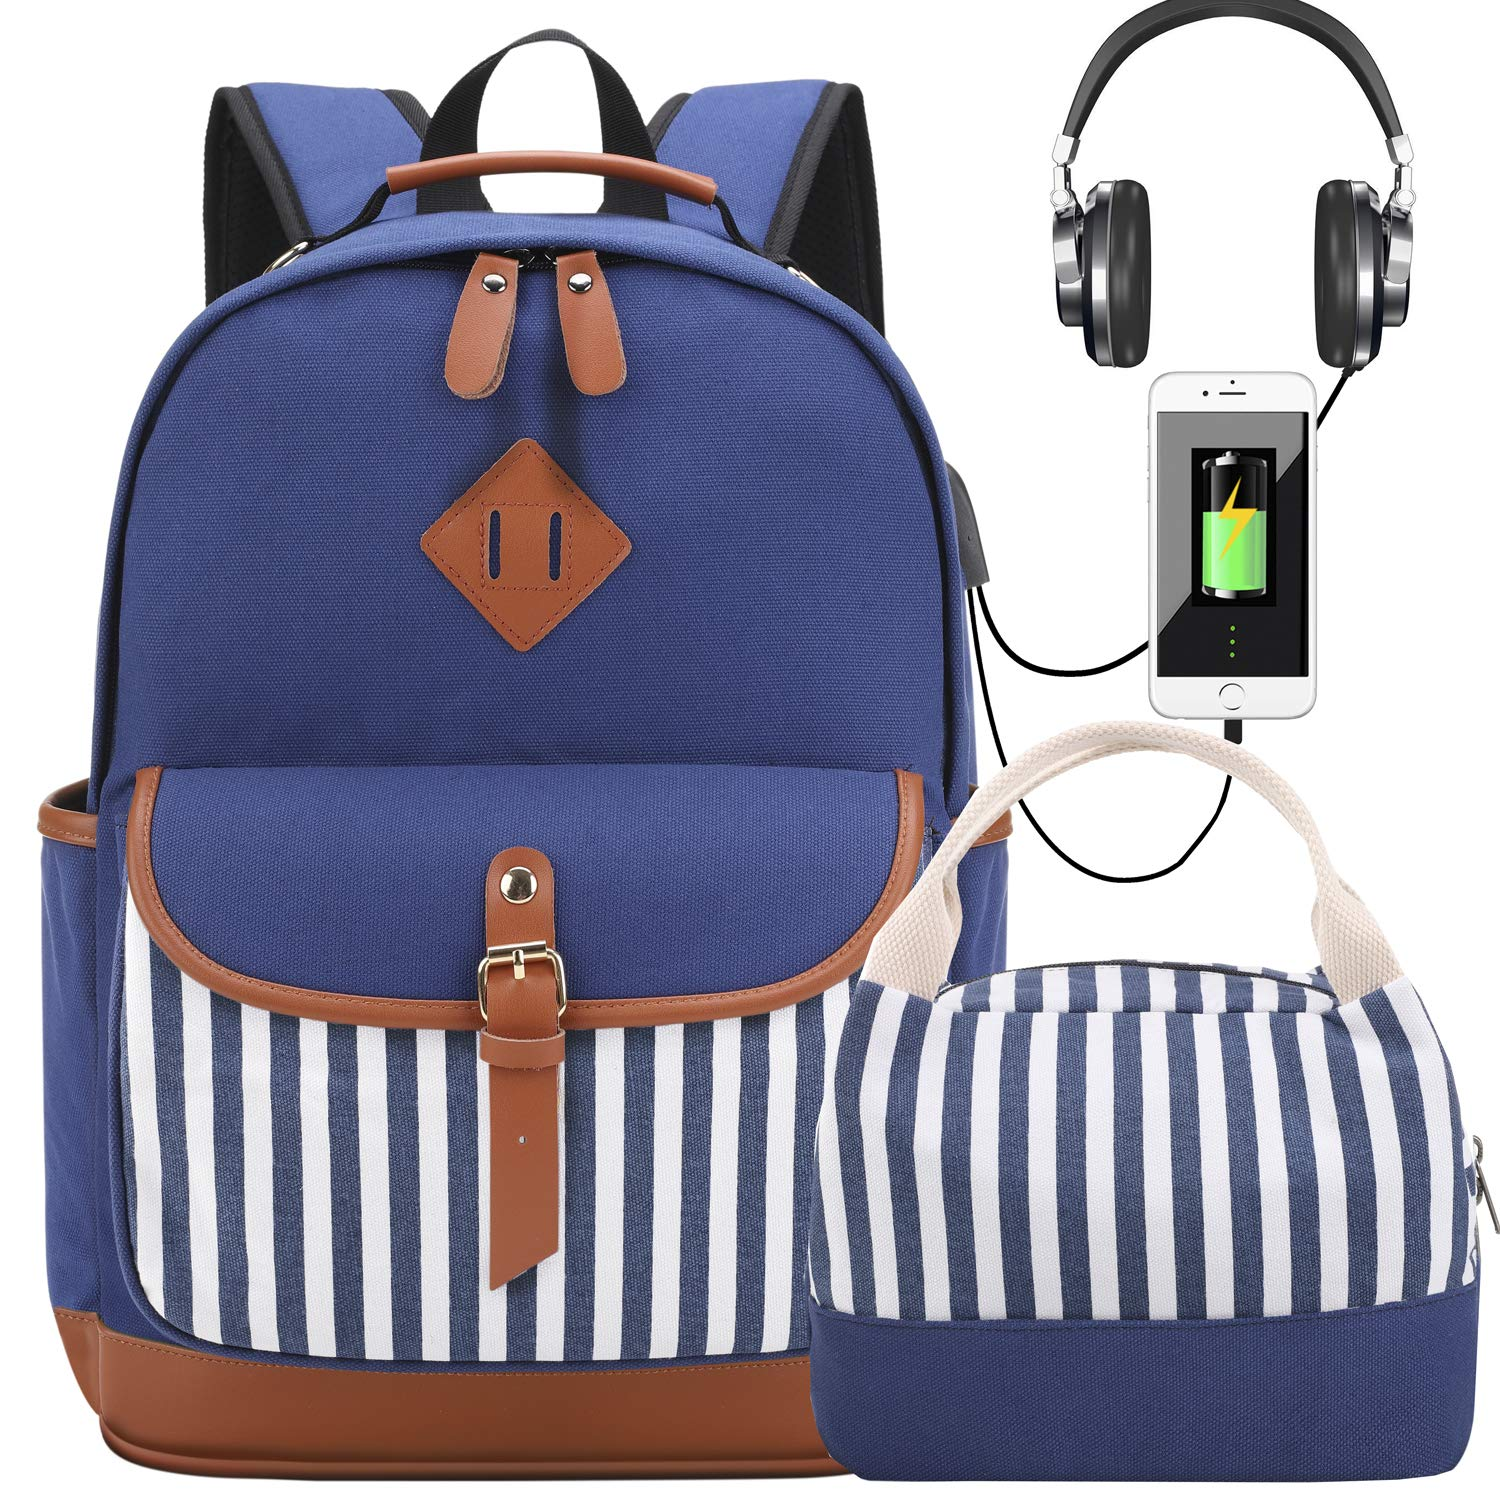 Girls School Backpacks Set with Lunch Bag Canvas Backpack with USB Charging Port Women Laptop Backpack schoolbags Bookbags (Blue Set) by Meisohua